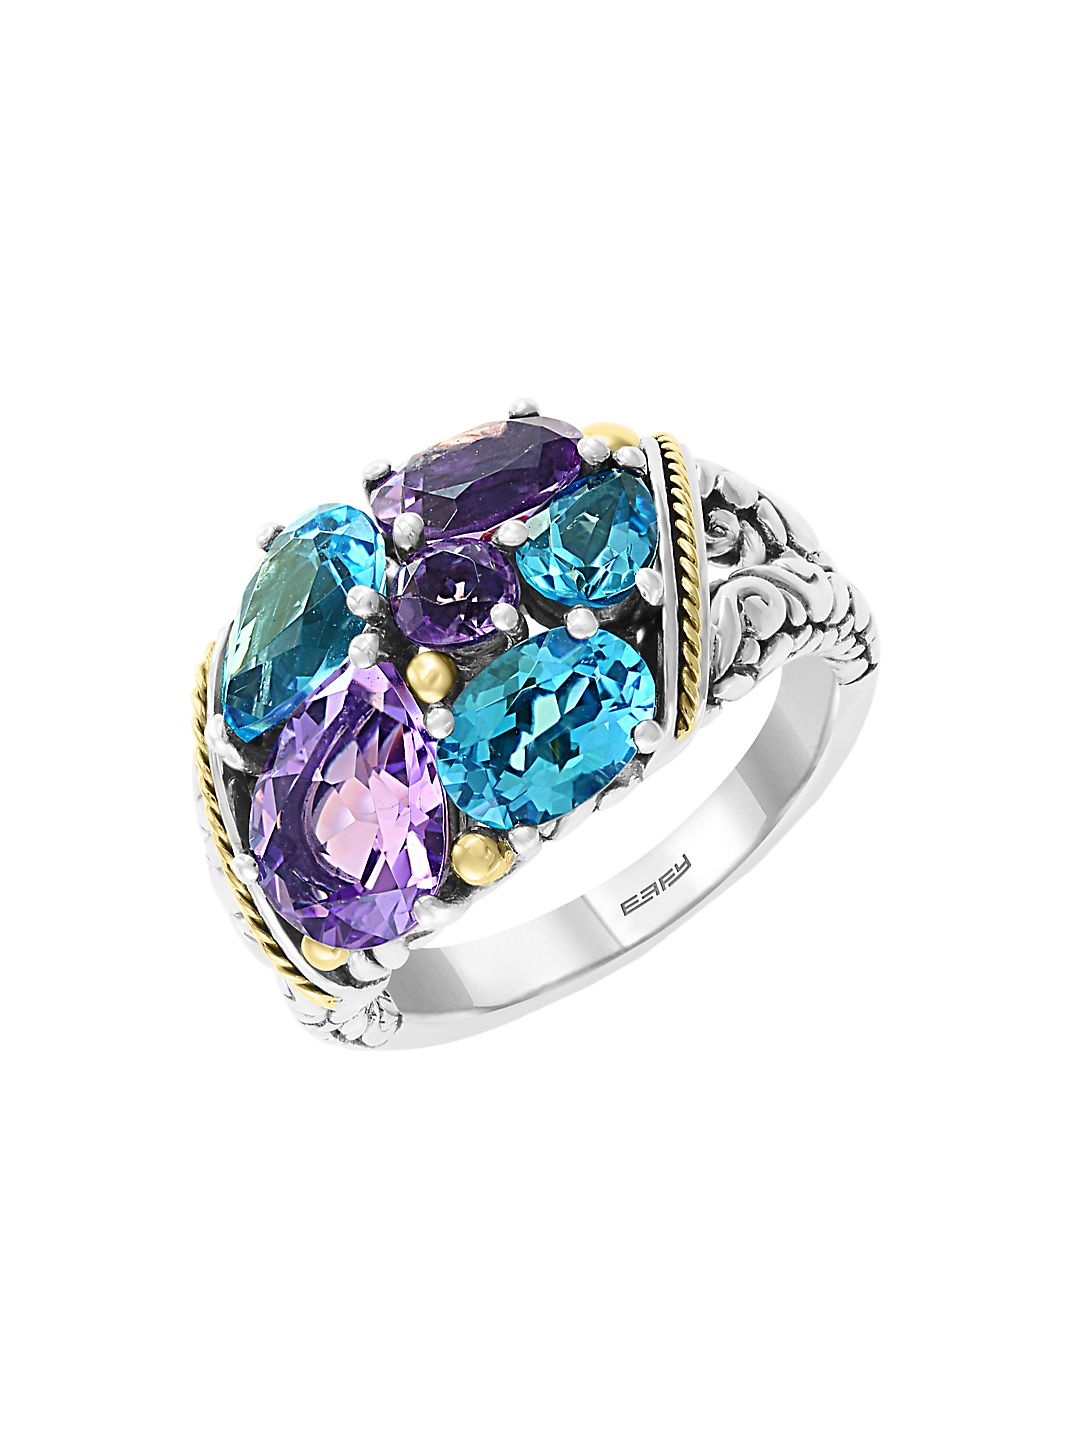 Sterling Silver, 18K Yellow Gold, Amethyst & Blue Topaz Cocktail Ring